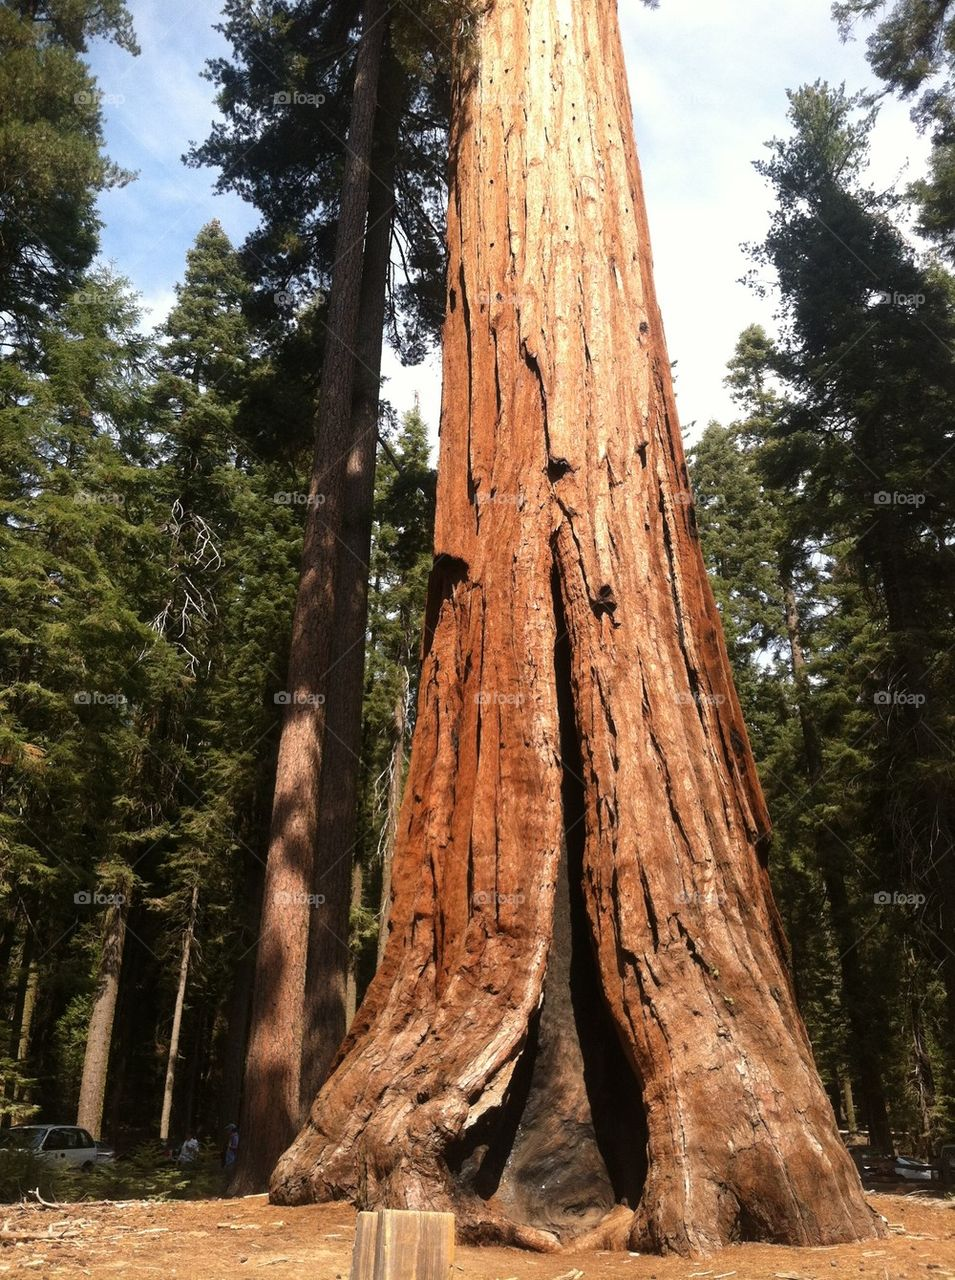 national park ca giants sequoia tree by NicoleVardi